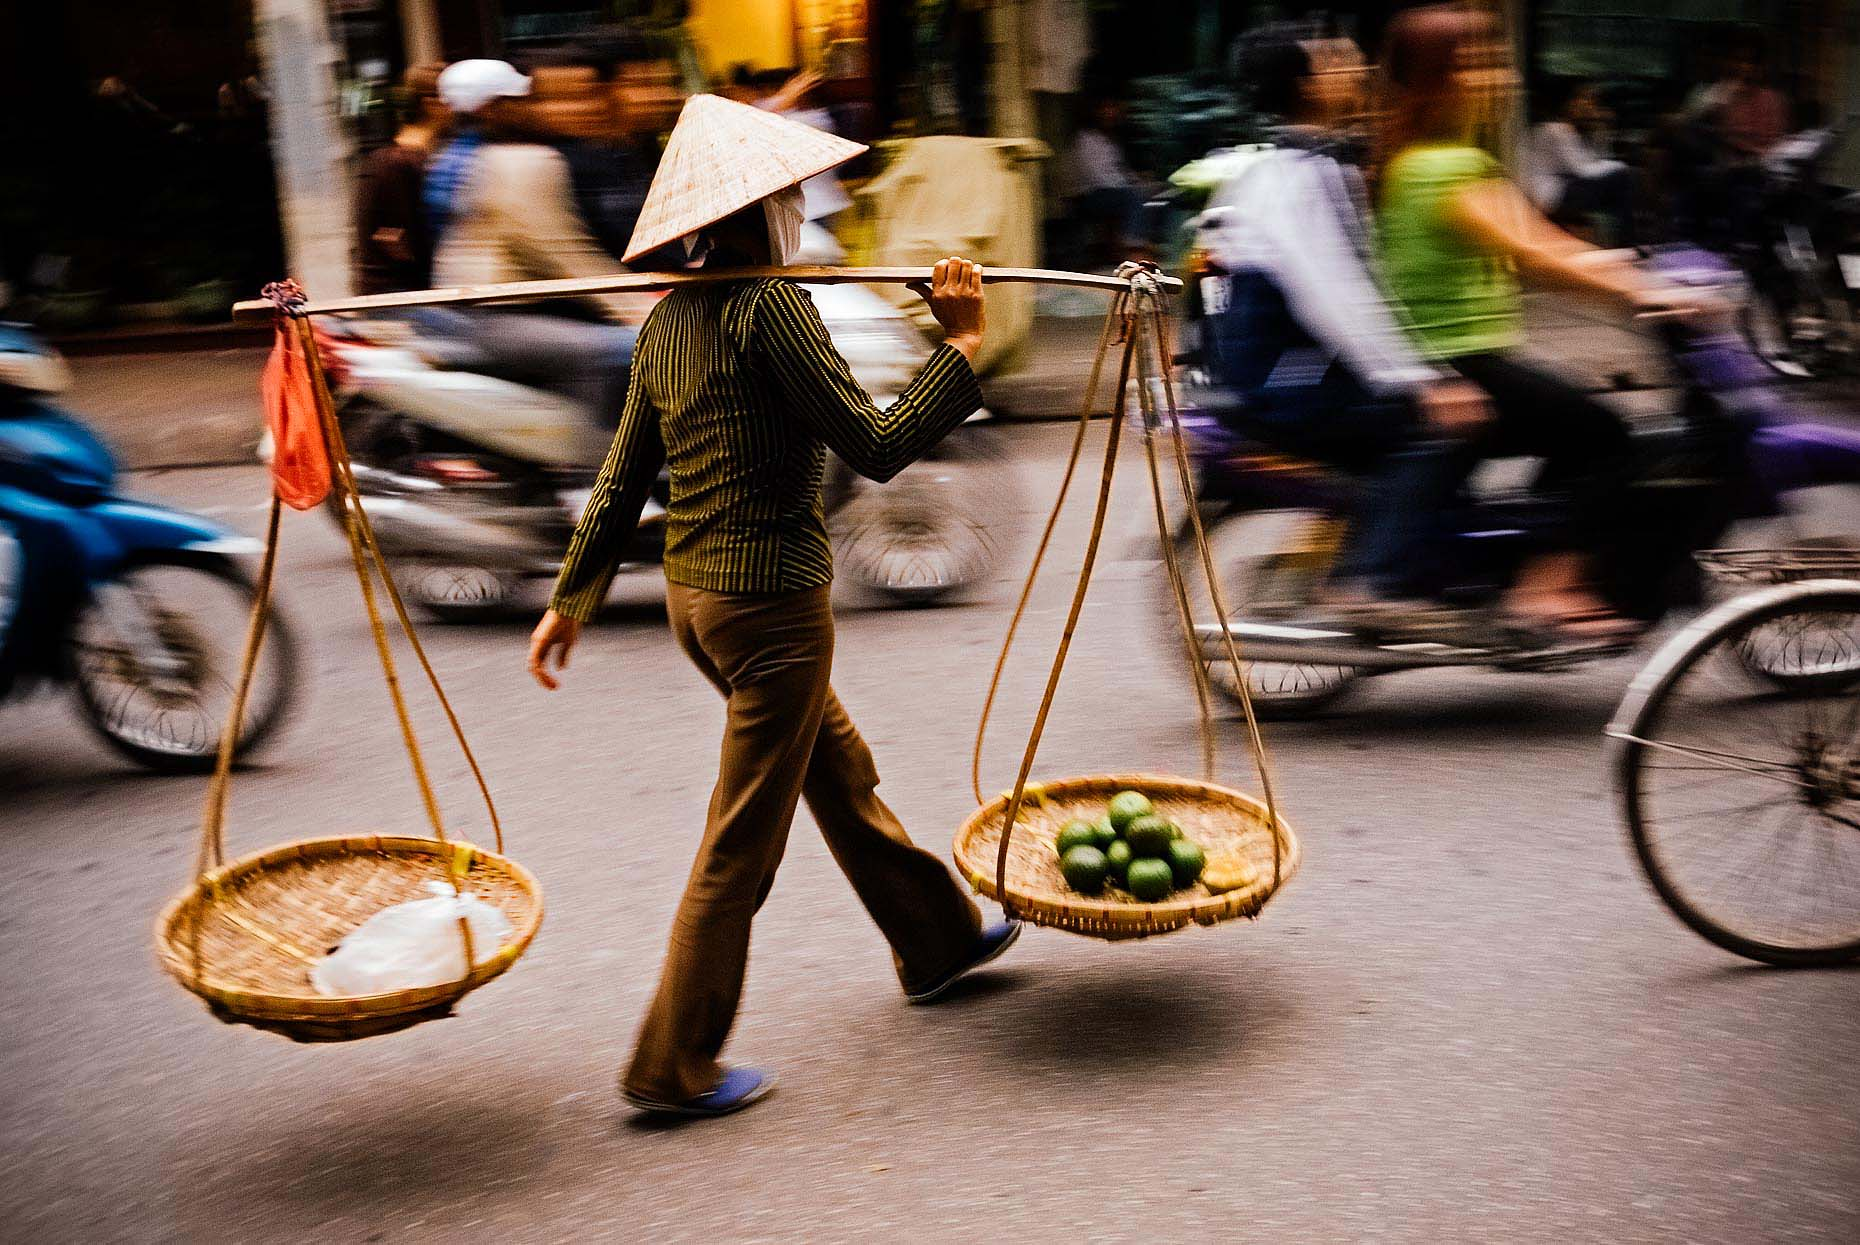 hanoi-street-photography-travel-vietnam-31